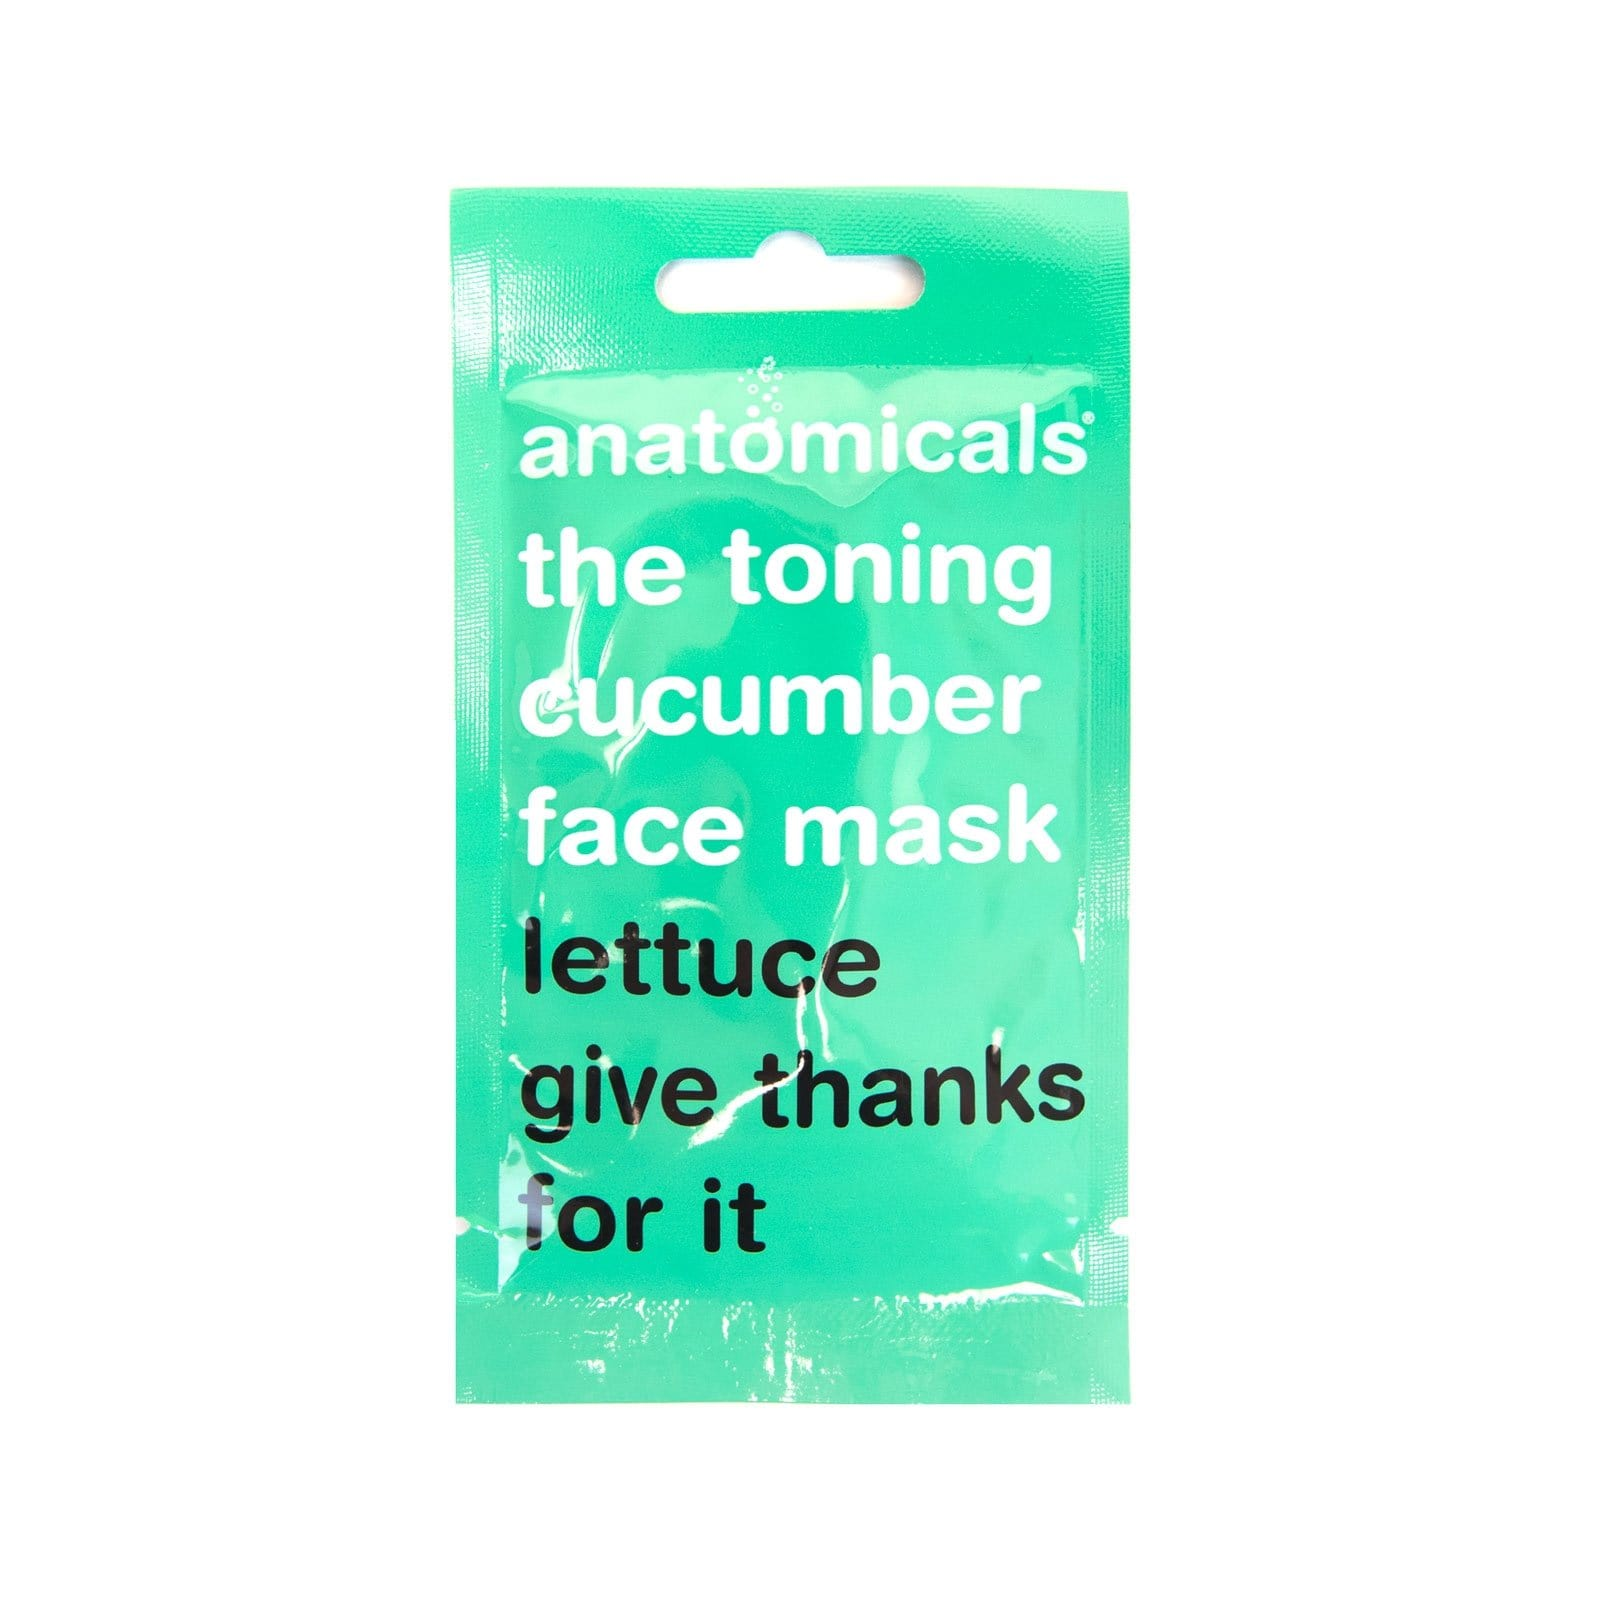 The Toning Cucumber Face Mask